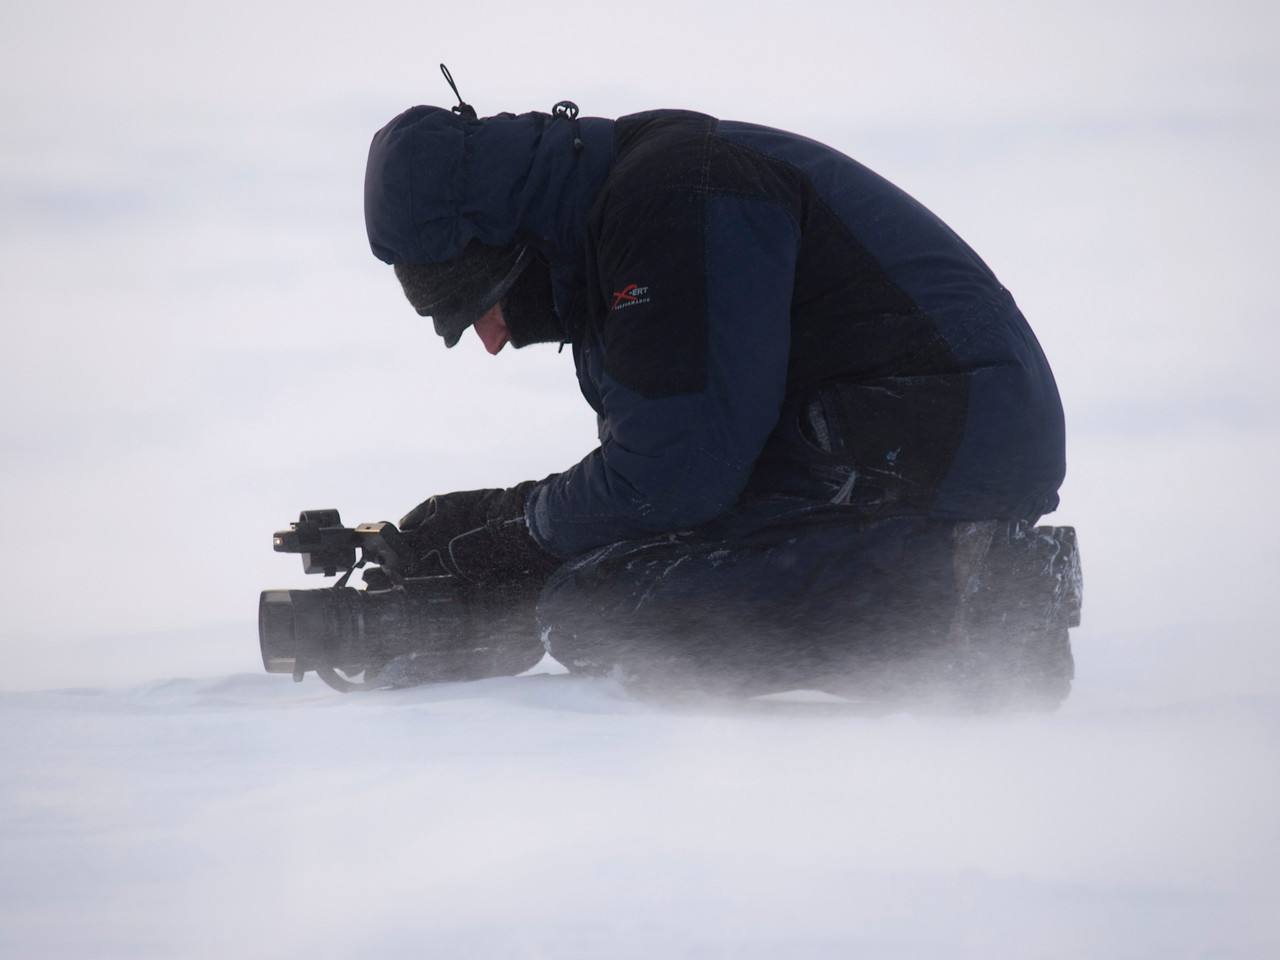 Al filming on the arctic plateau away from camp. Olympus E3, 50-200mm, F4.5, 1/160s